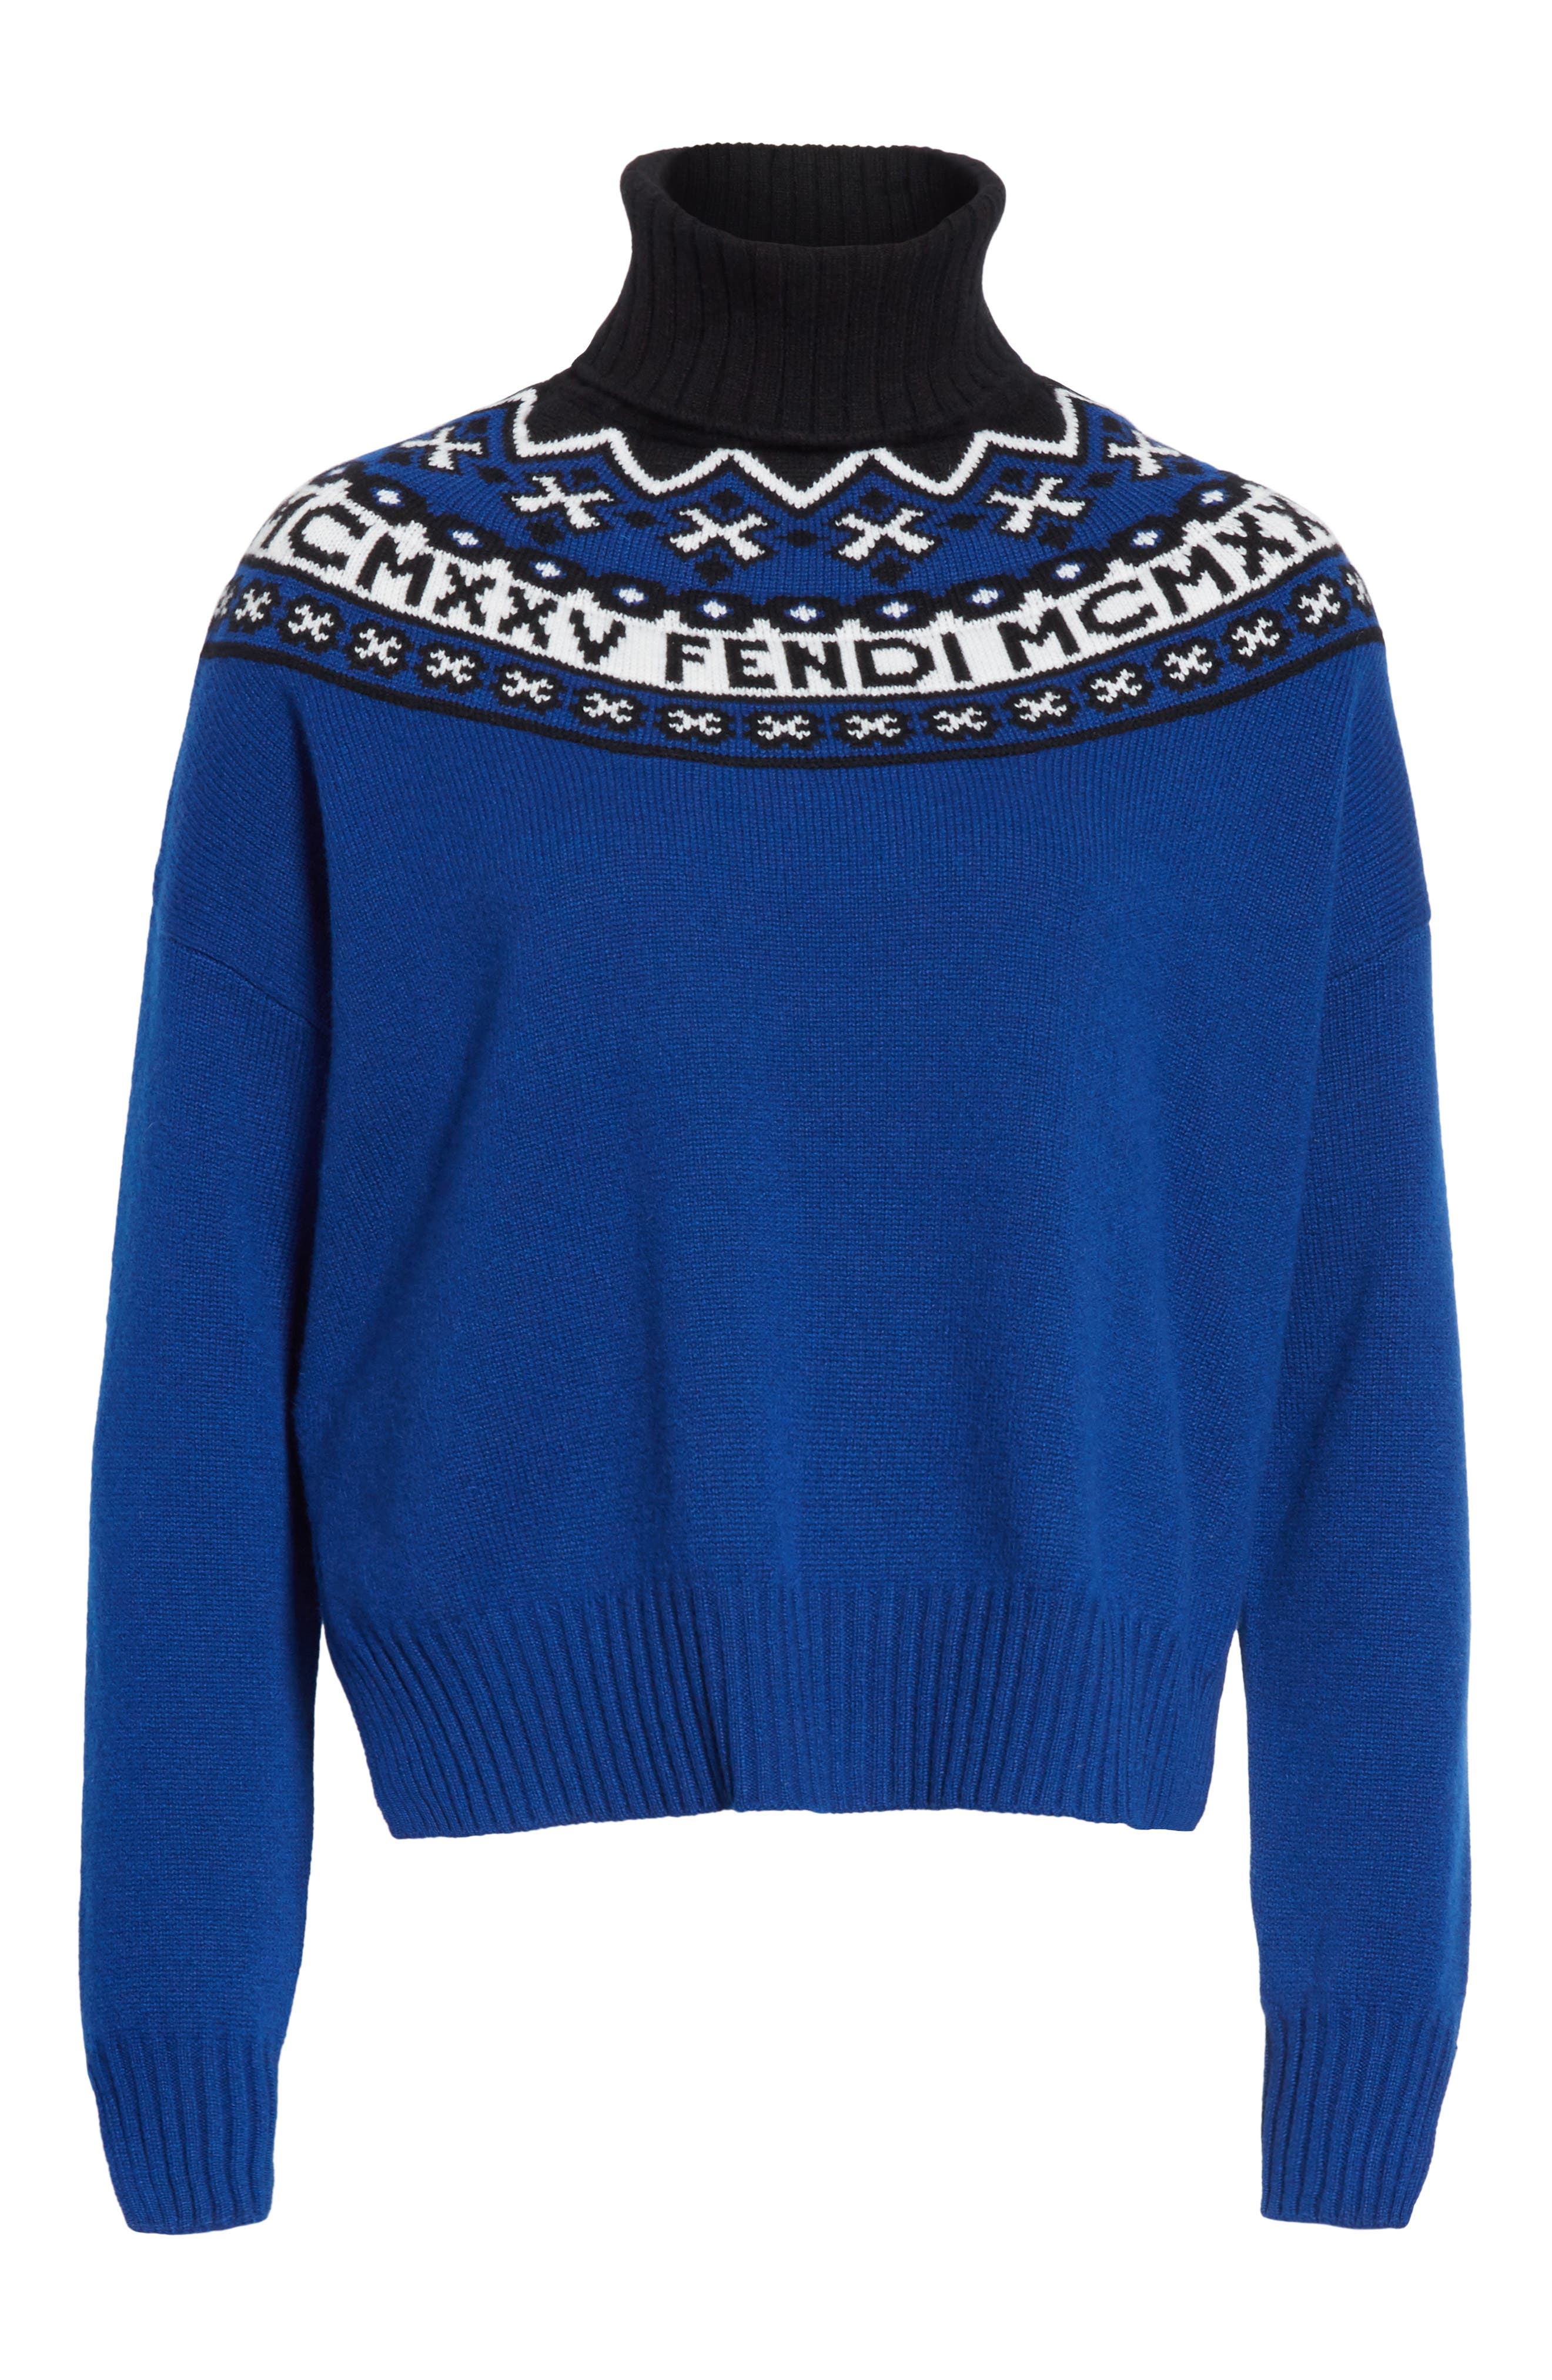 Heritage Wool & Cashmere Sweater,                             Alternate thumbnail 6, color,                             400